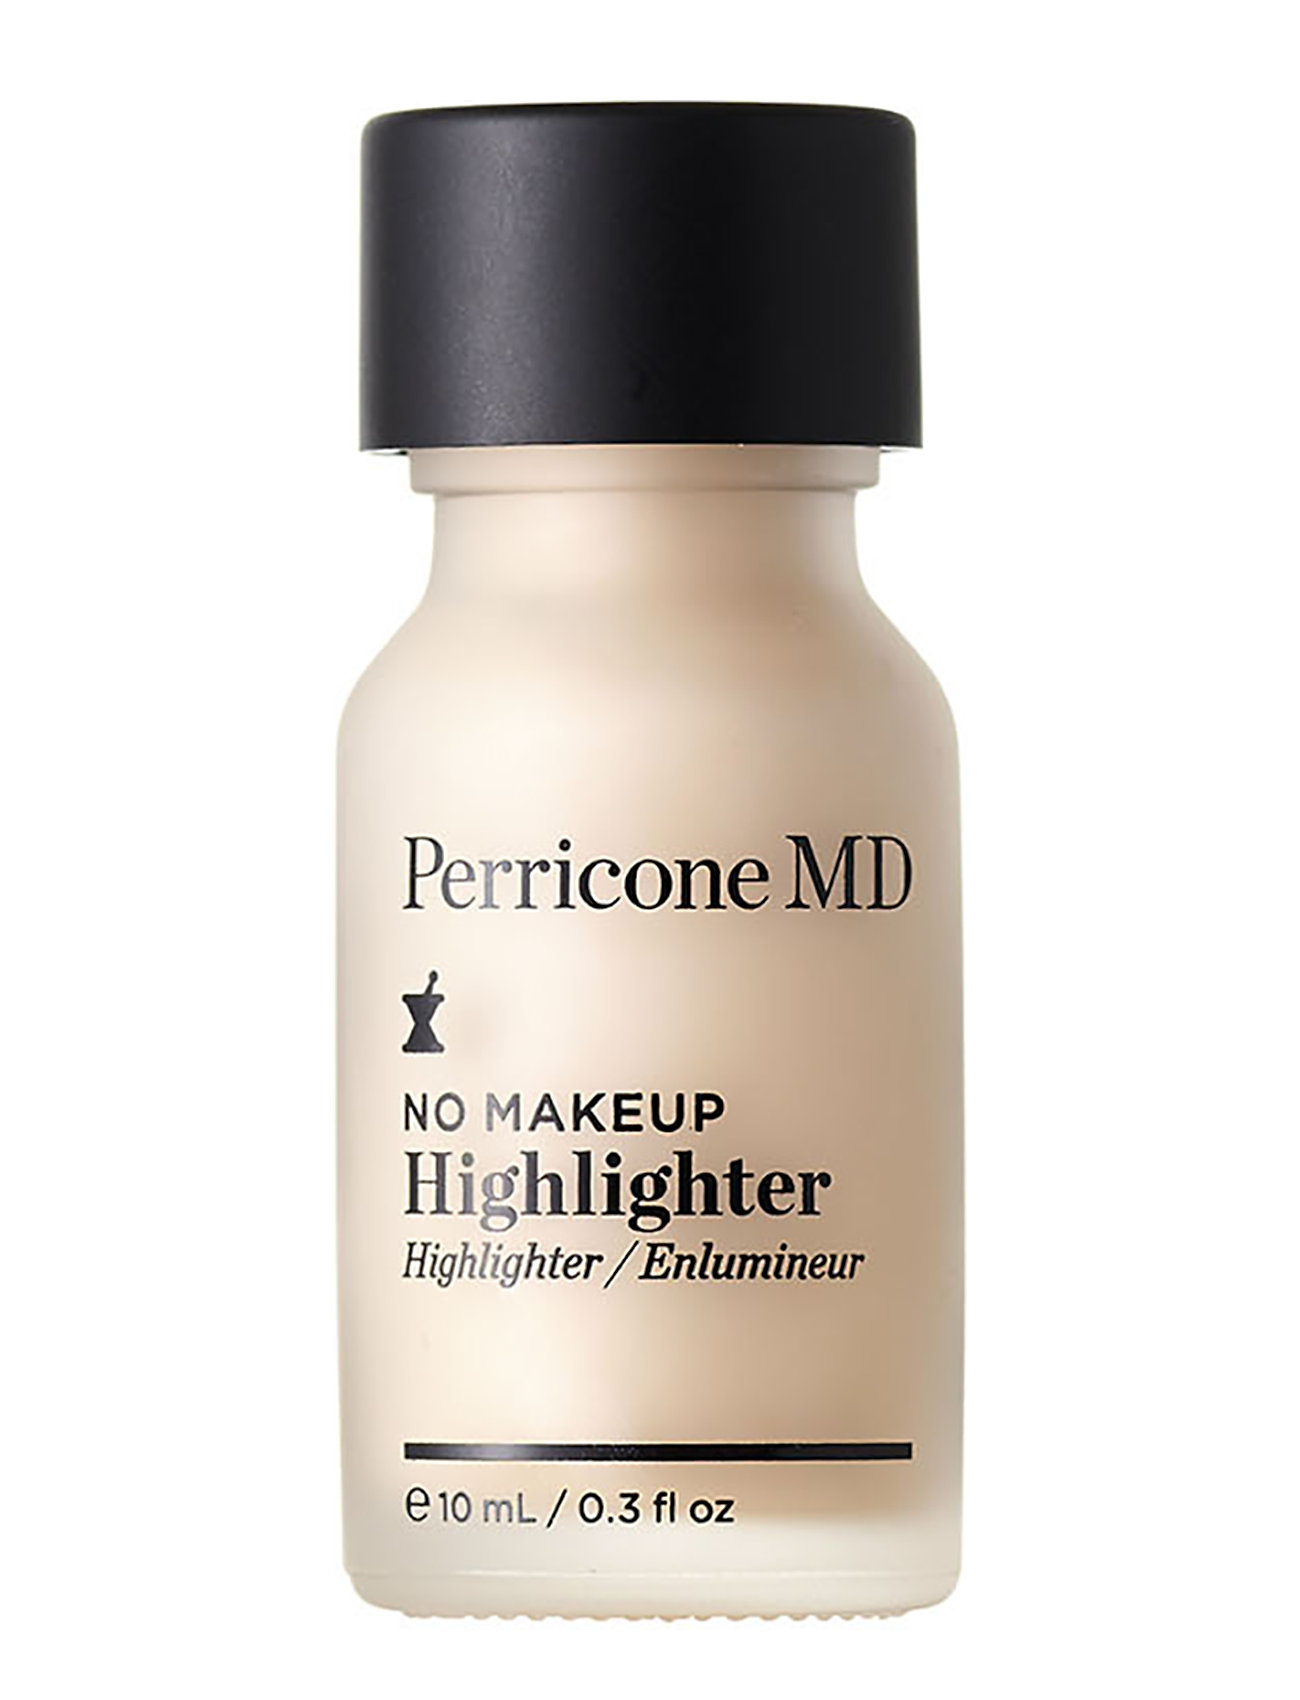 Image of Nm Highlighter Highlighter Contour Makeup Creme Perric MD (3261451707)